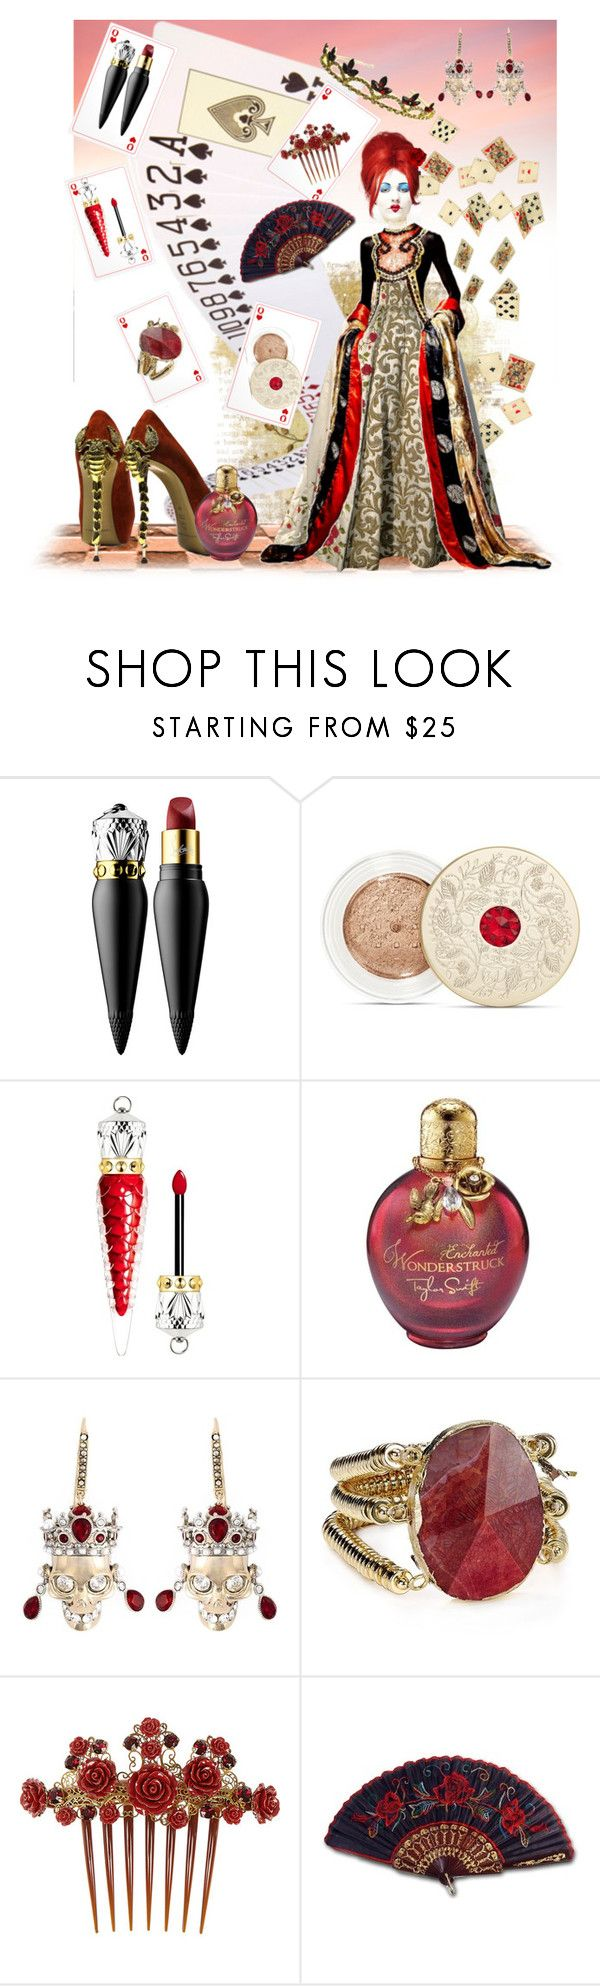 """""""Iracebeth of Crimms"""" by slytherin-pirate-chick ❤ liked on Polyvore featuring Christian Louboutin, Gianmarco Lorenzi, Bare Escentuals, Alexander McQueen, Aqua, Dolce&Gabbana, Pierre Balmain and TIARA"""